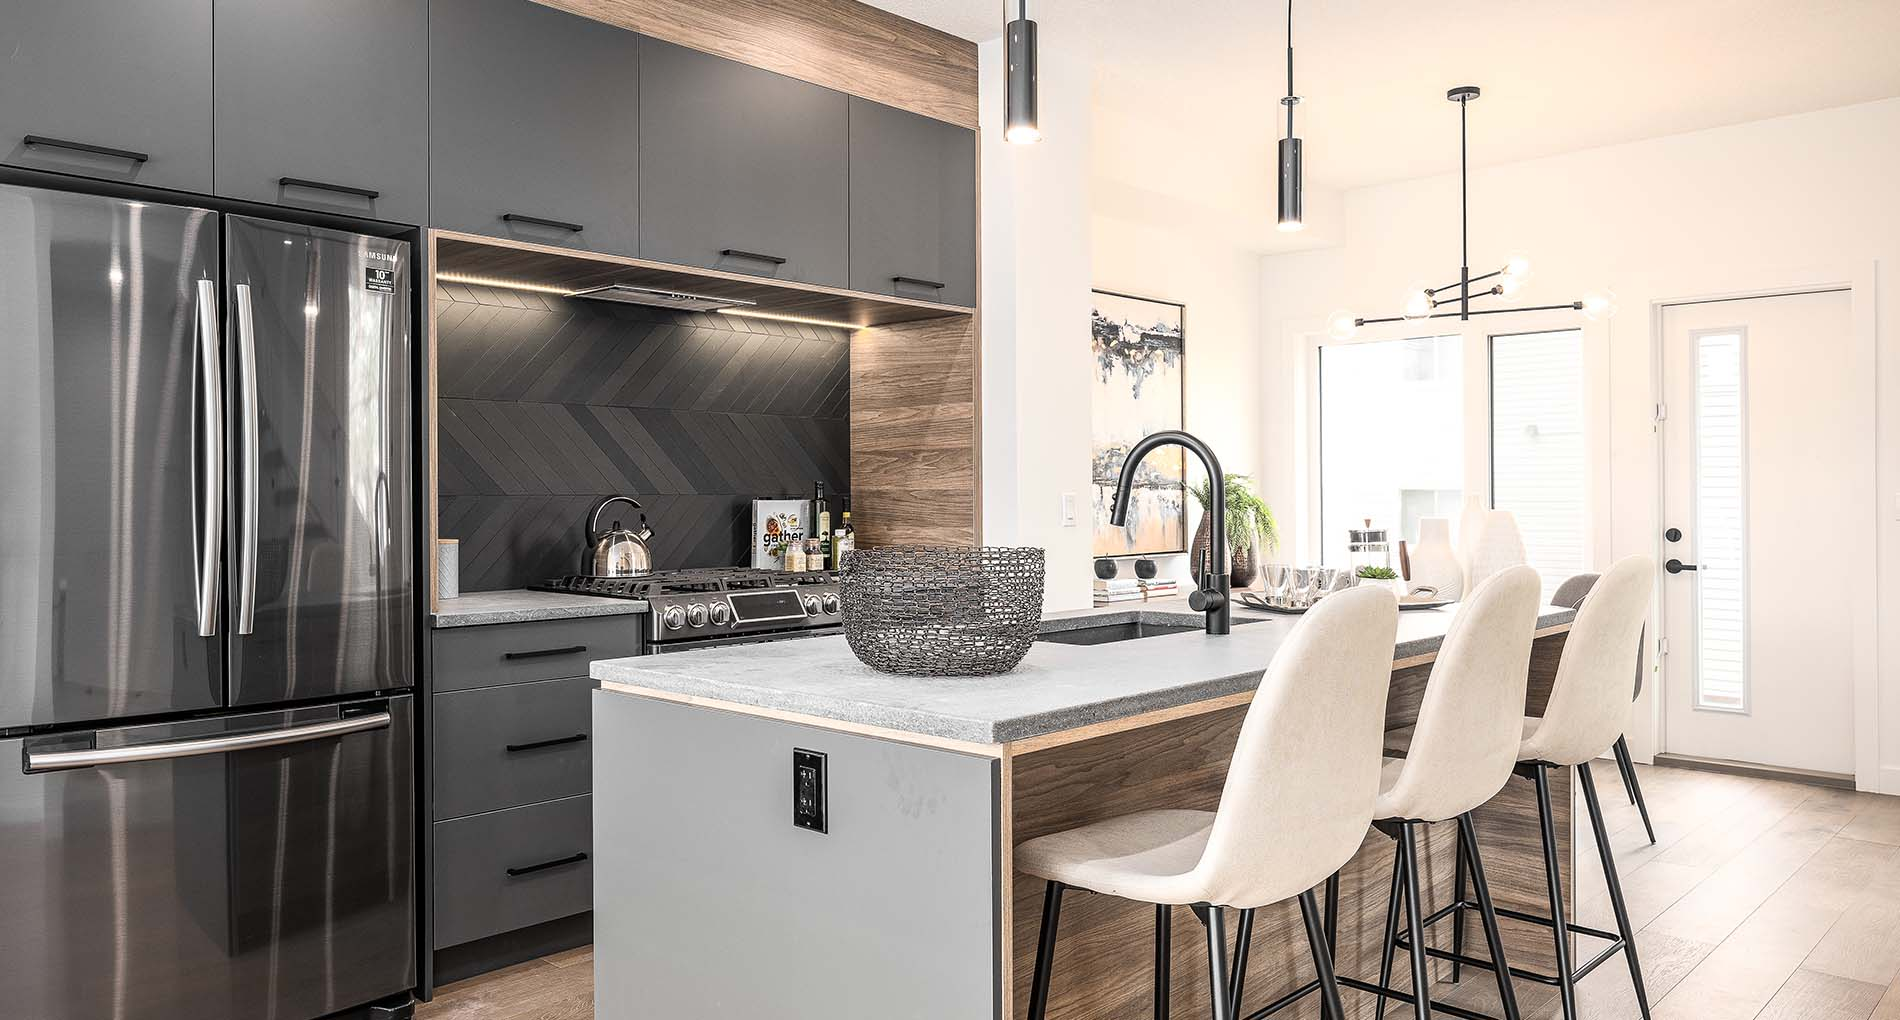 Tribeca Townhomes